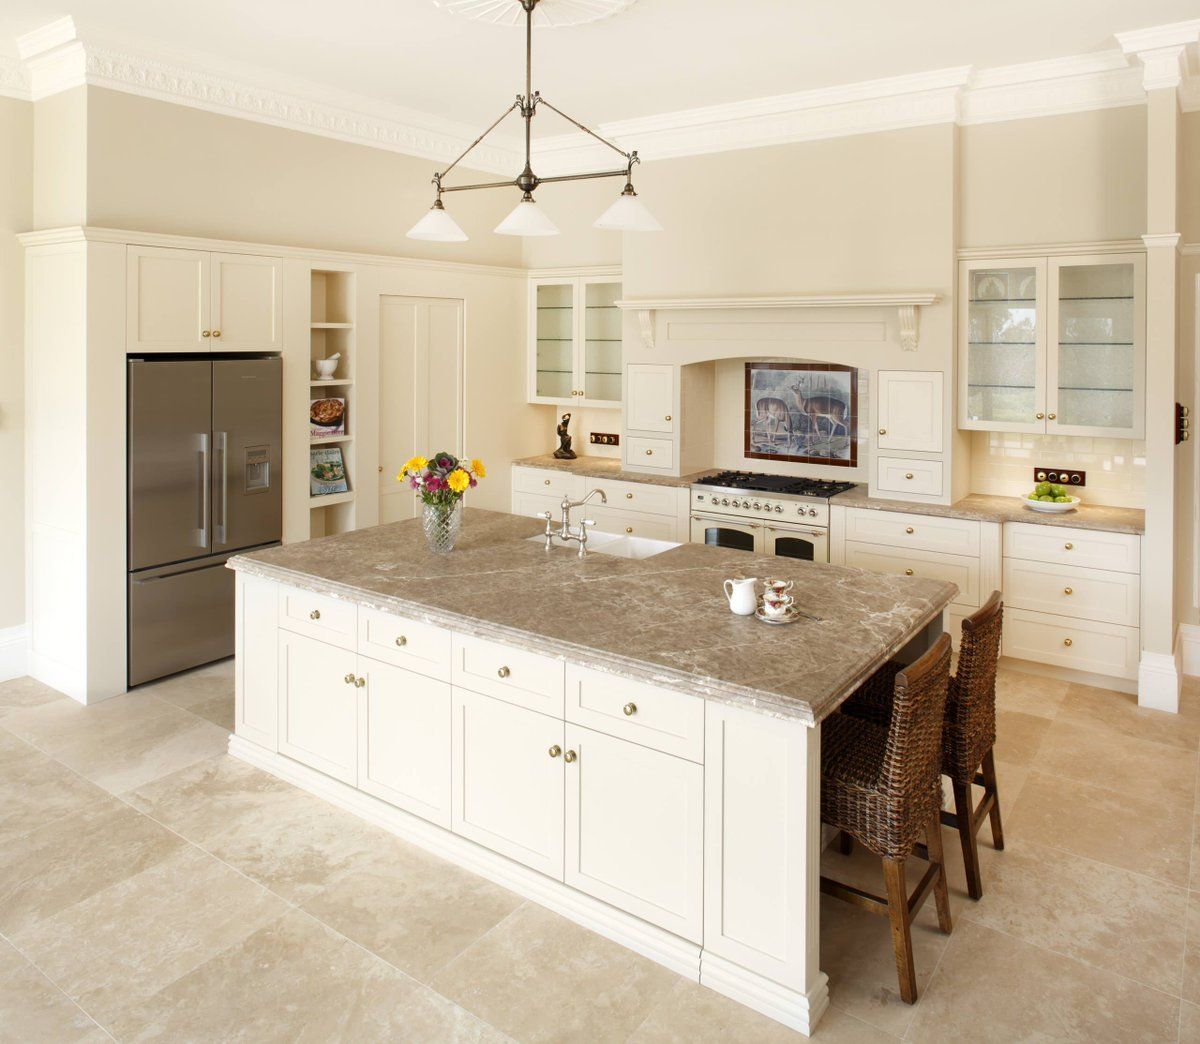 Types Of Floor Tiles For Kitchen: Kitchen Floor Types That Make Homes Look Amazing While